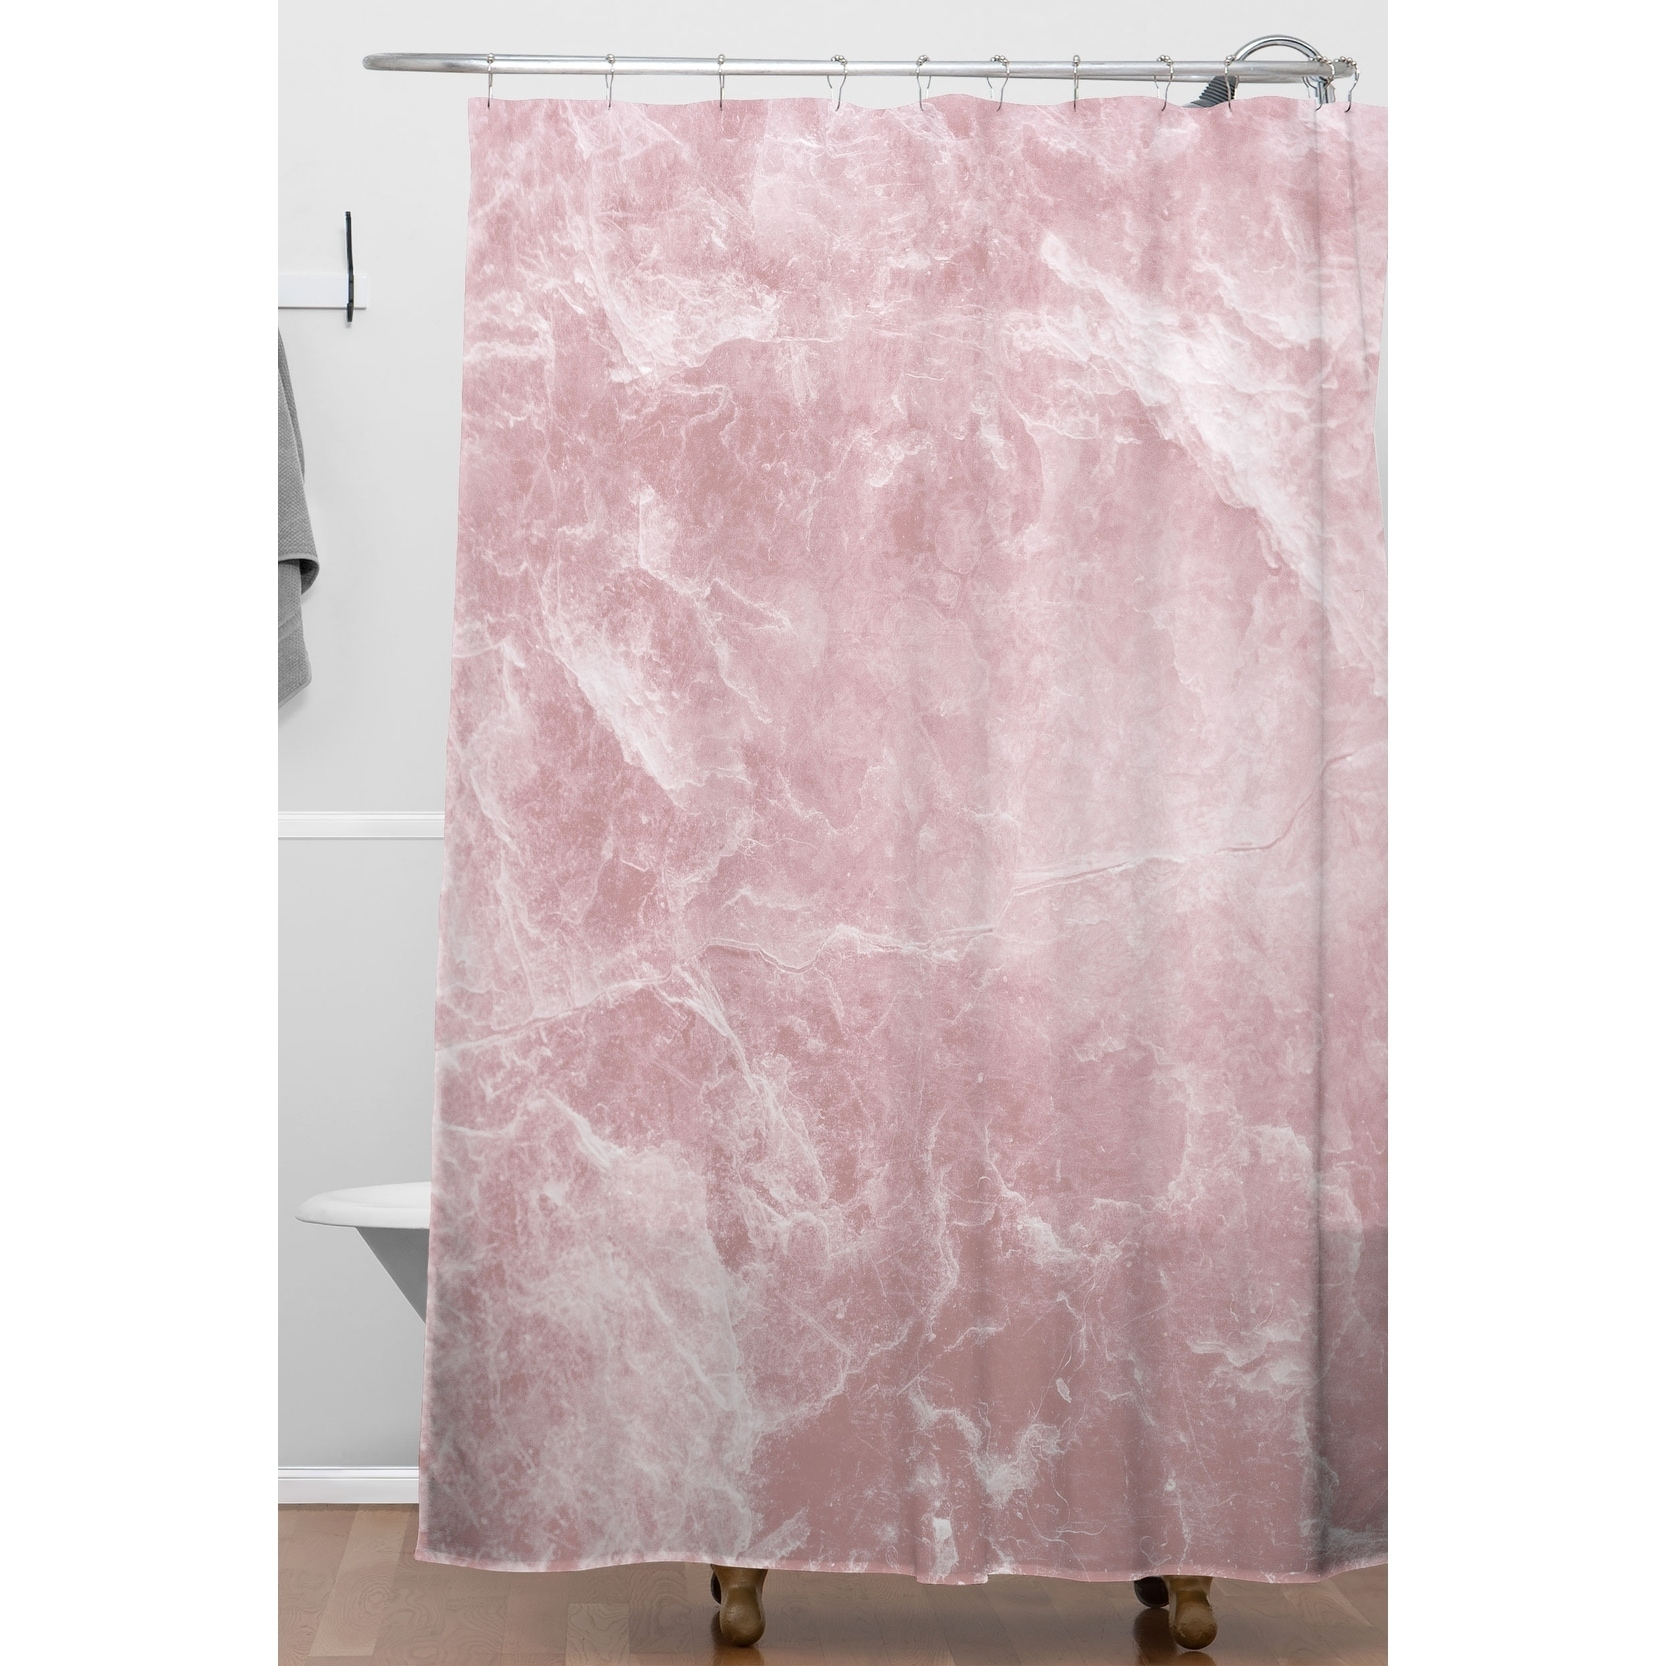 deny designs enigmatic blush pink marble shower curtain